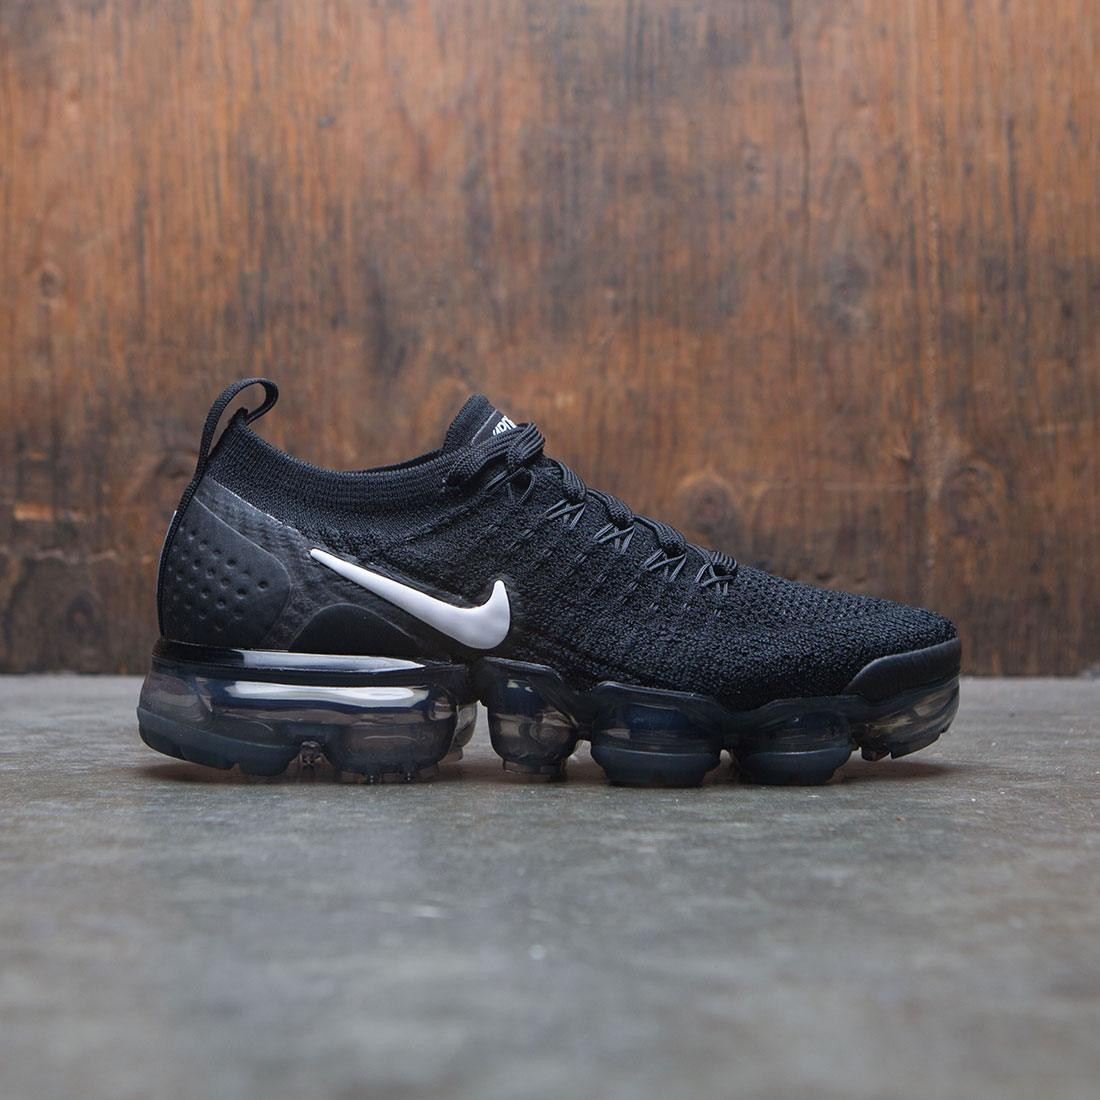 new concept 73a5a a4412 Nike Women Air Vapormax Flyknit 2 (black / white-dark grey-metallic silver)